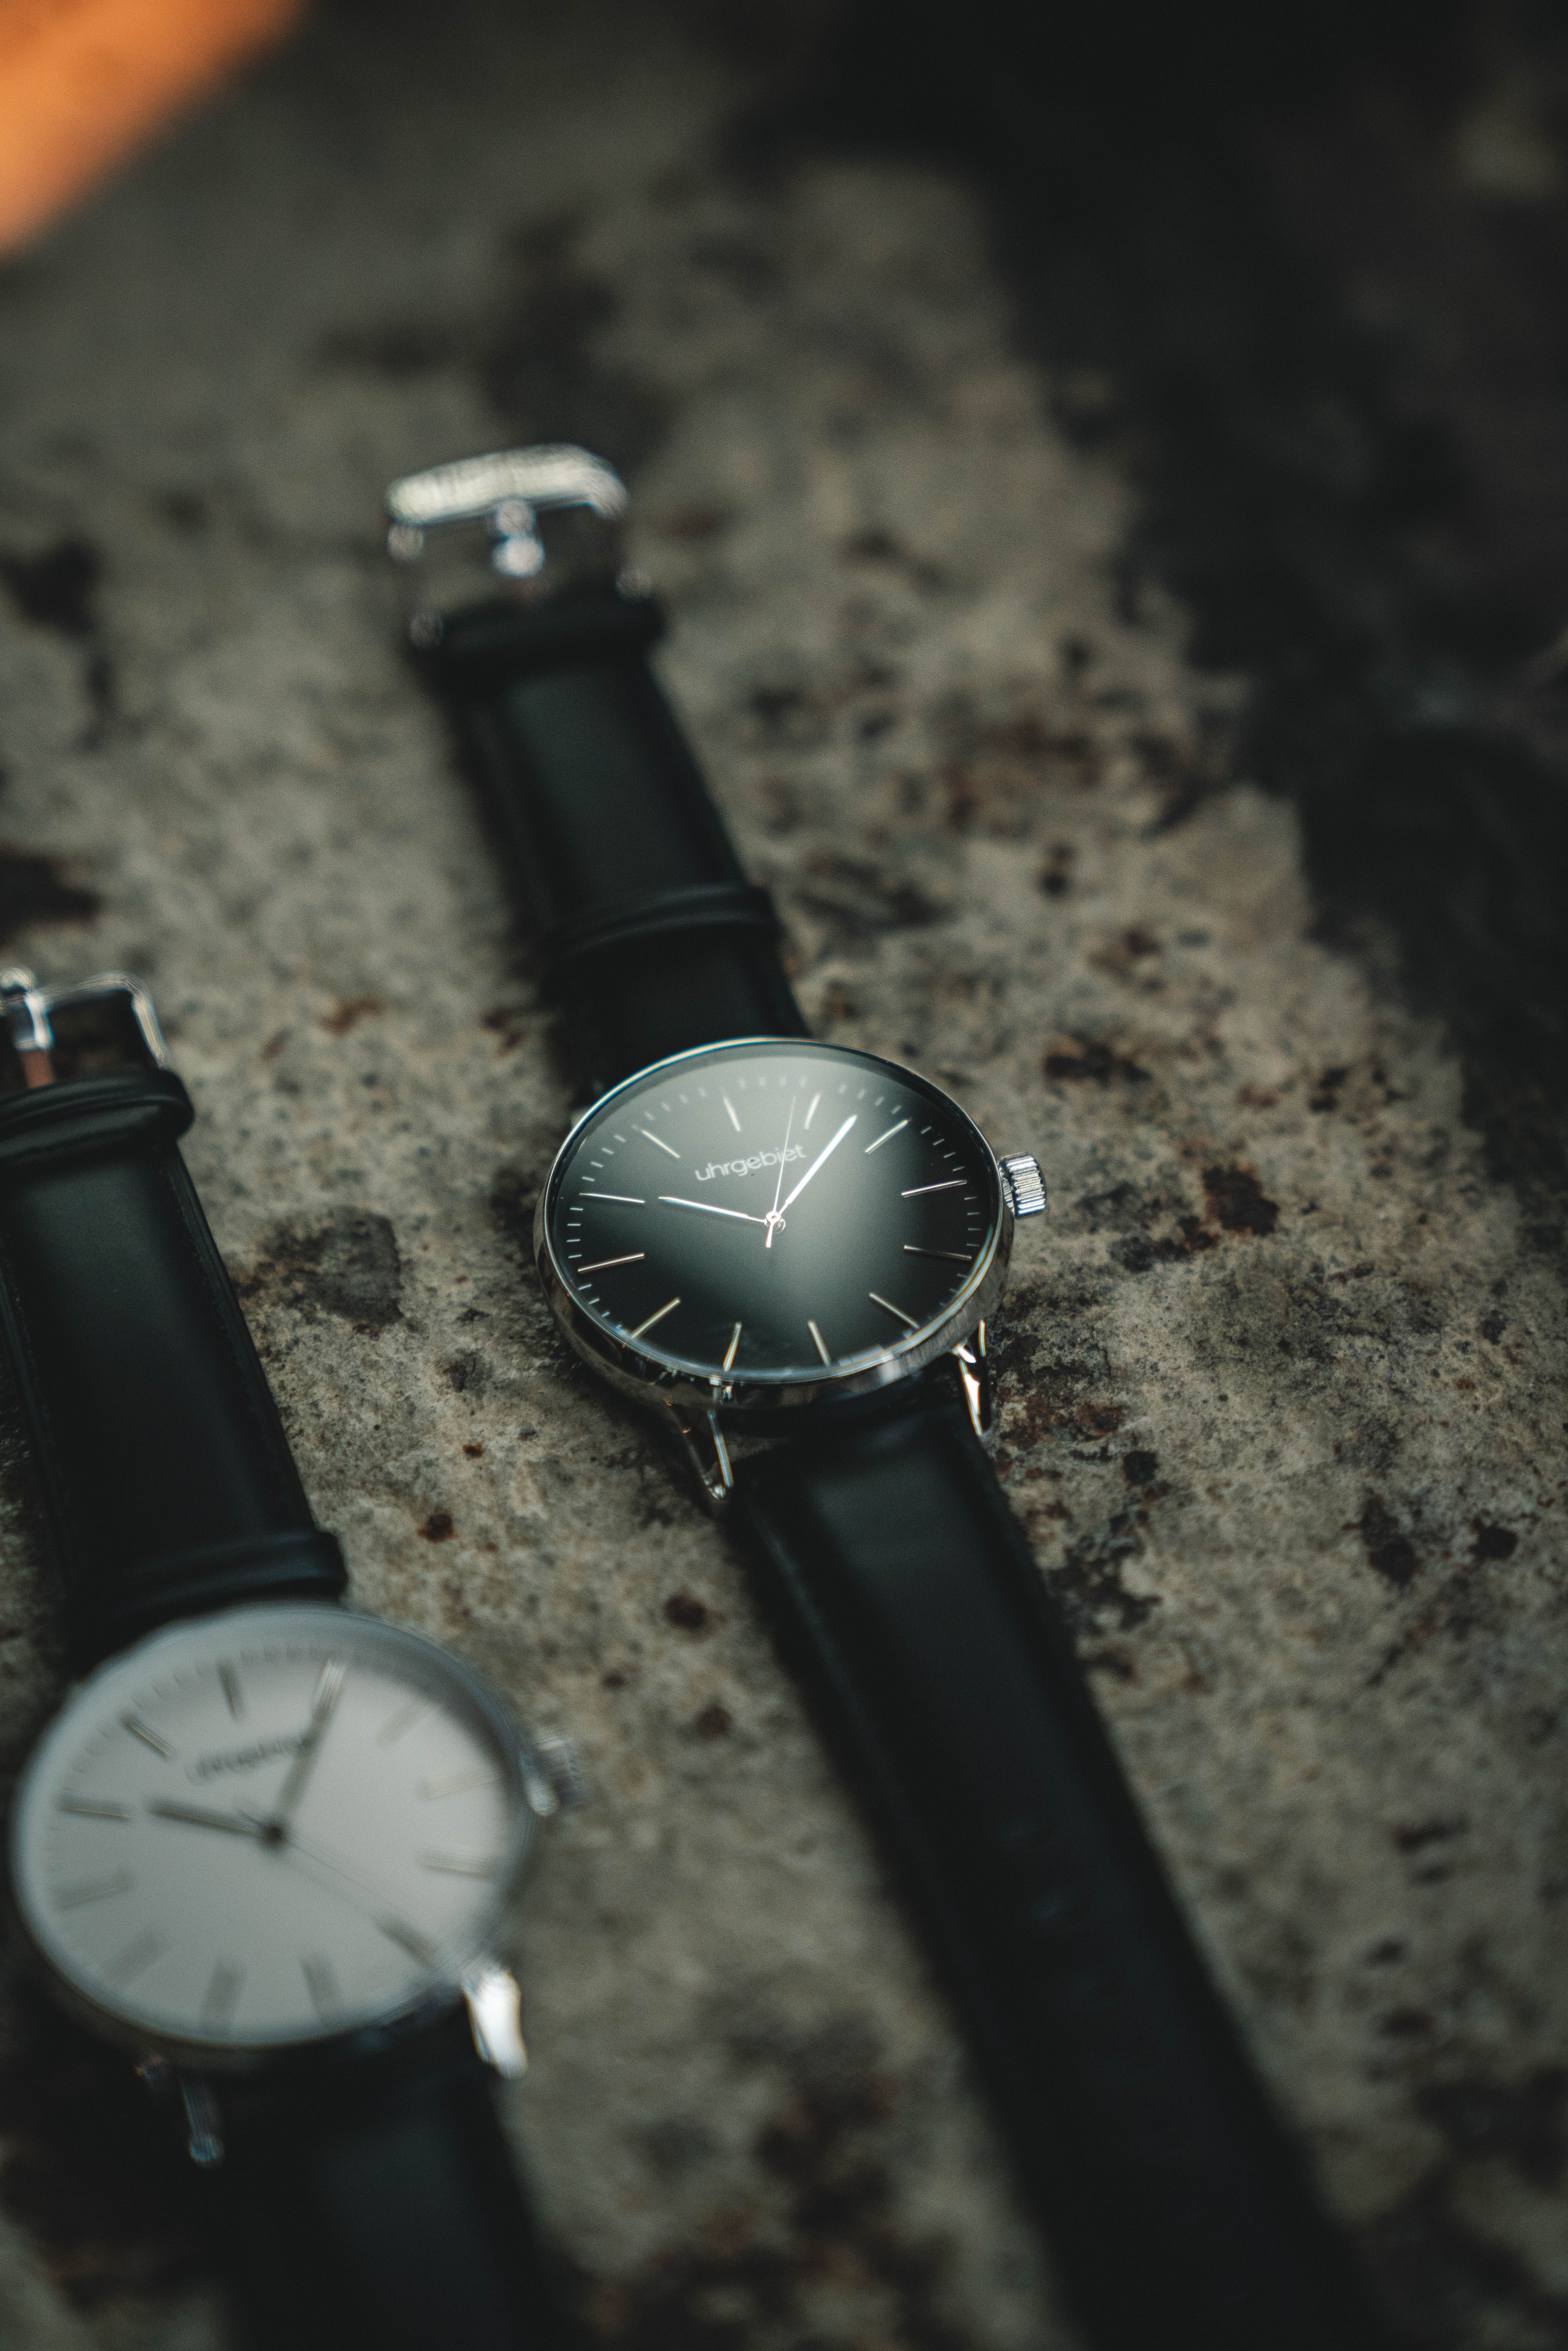 Photo of Two Analog Watches with Black Leather Bands on Gray Surface